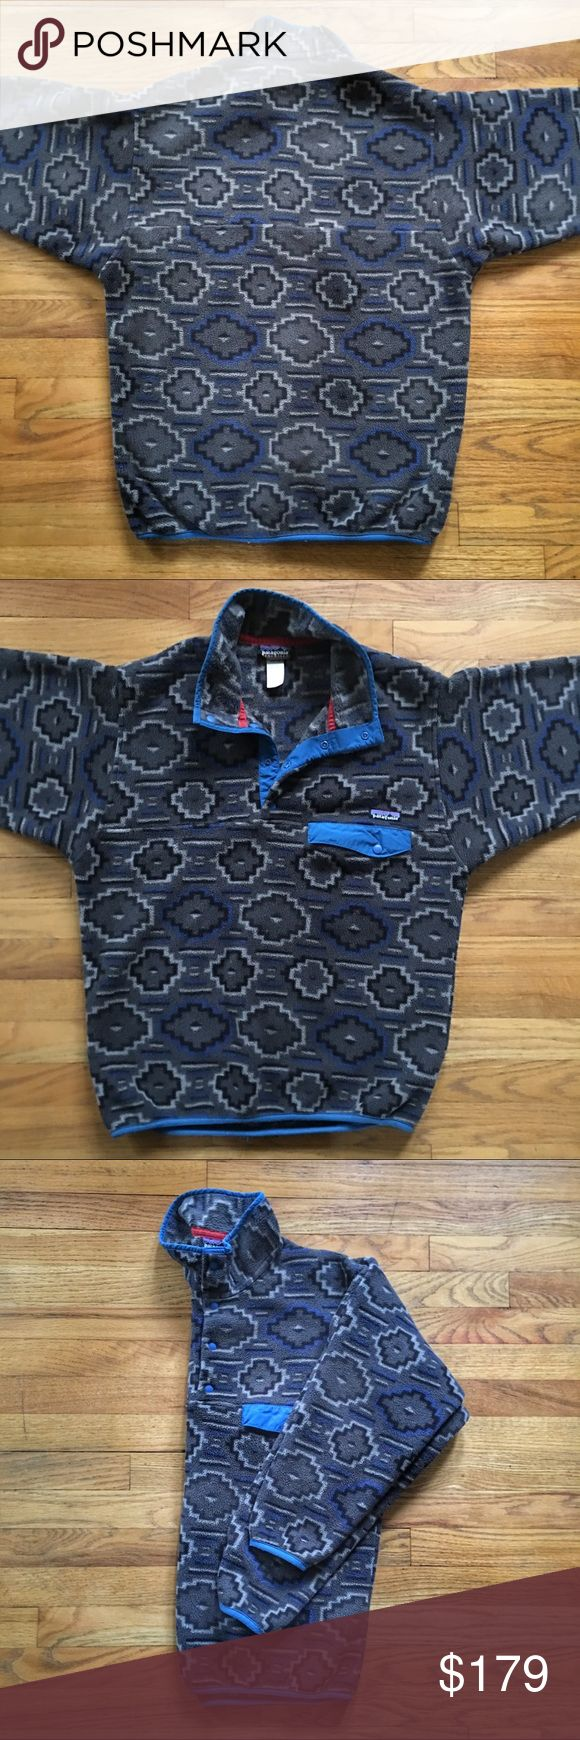 Patagonia Snap-T Synchilla Fleece Pull-Over Jacket Mens Patagonia Snap-T Synchilla Fleece Pull-Over Jacket - Rare Aztec Design - Small.  Pre-owned in great condition. Patagonia Jackets & Coats